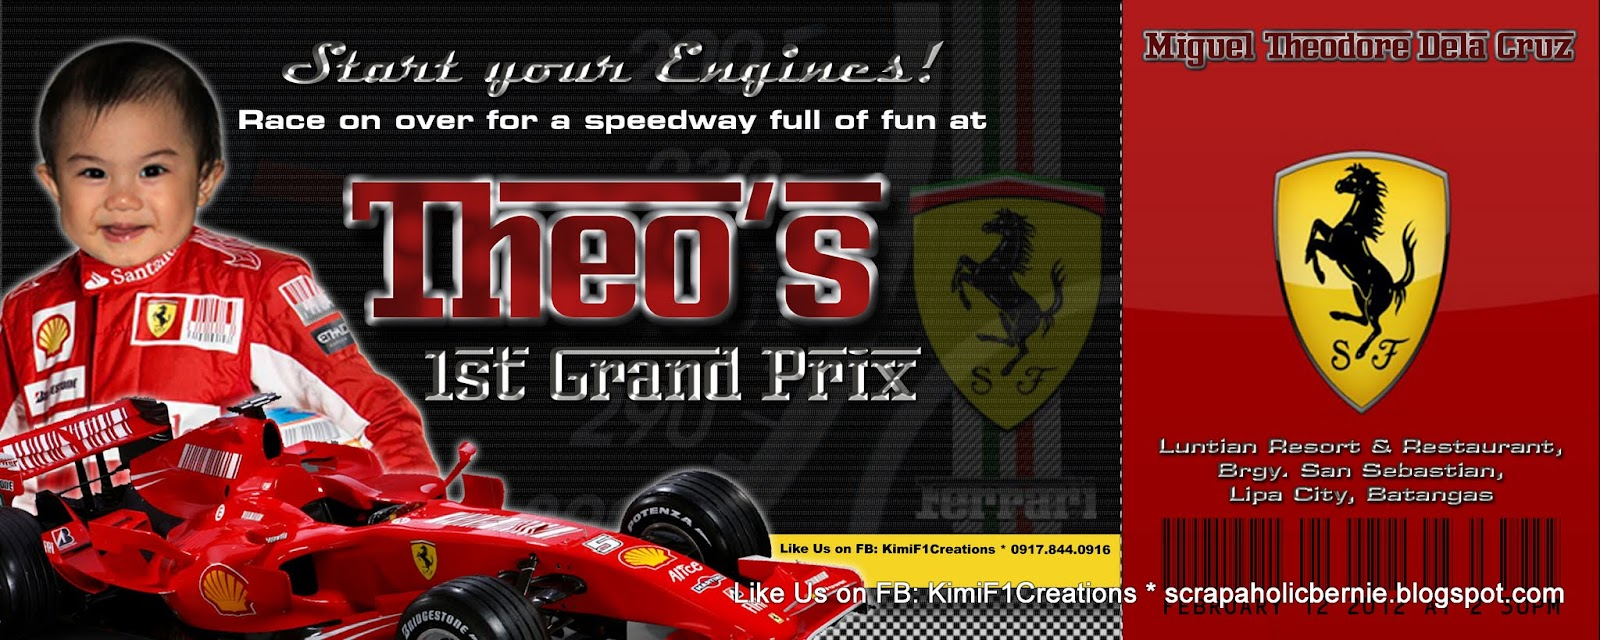 F1 digital scrapaholic theos f1 theme birthday invitation and f1 theme invitation and party printables by kimif1creations stopboris Choice Image